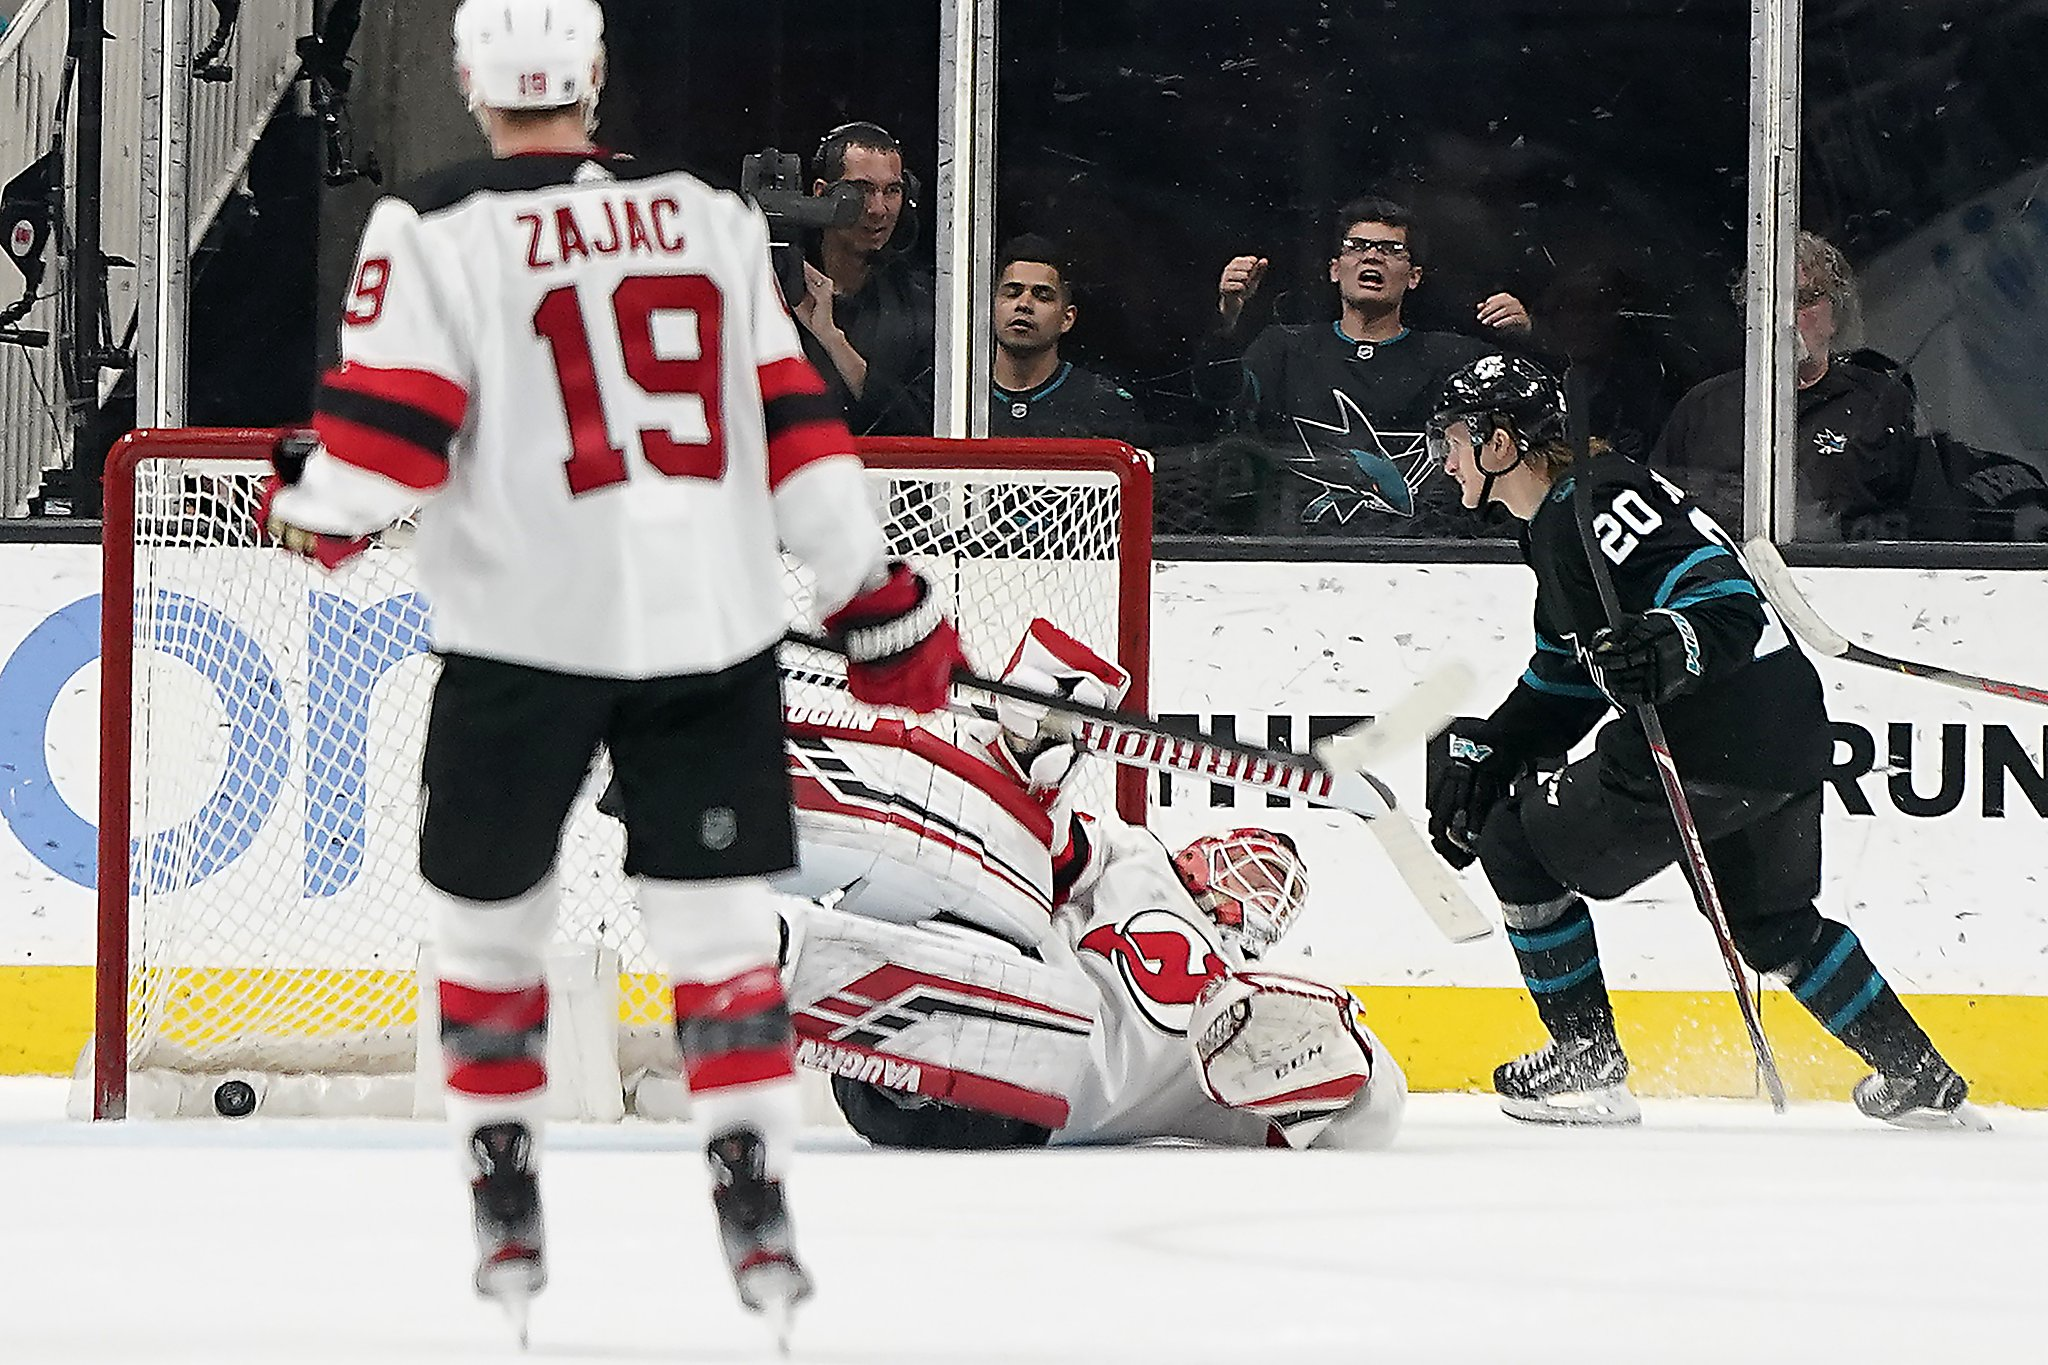 Joe Thornton isn't unhappy with Sharks, who top Devils in OT